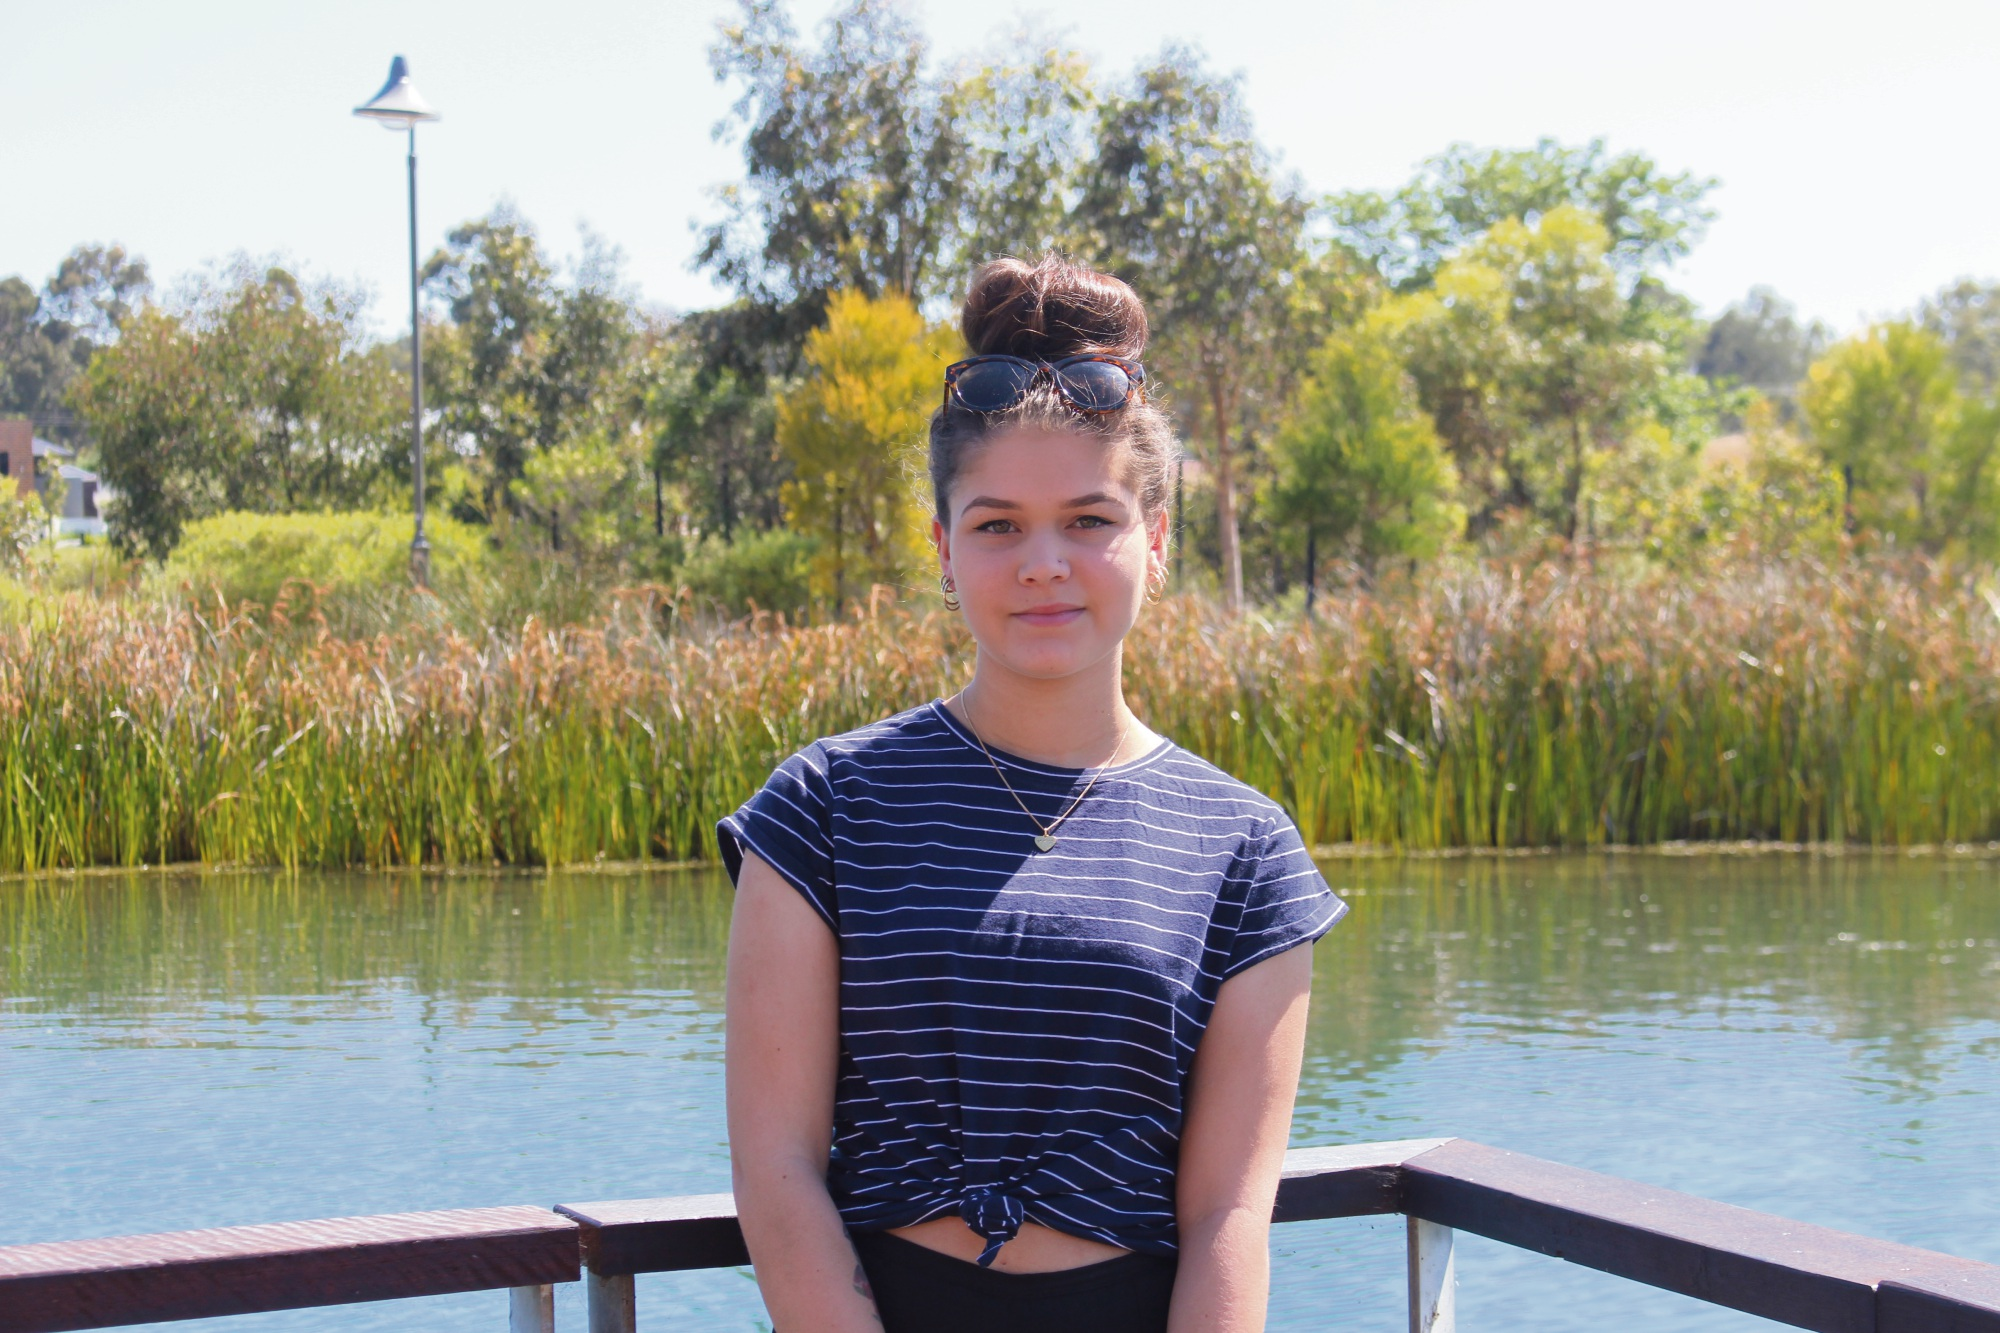 Cheyenne Eakin is off to Hong Kong as part of the International Youth Exchange Program.